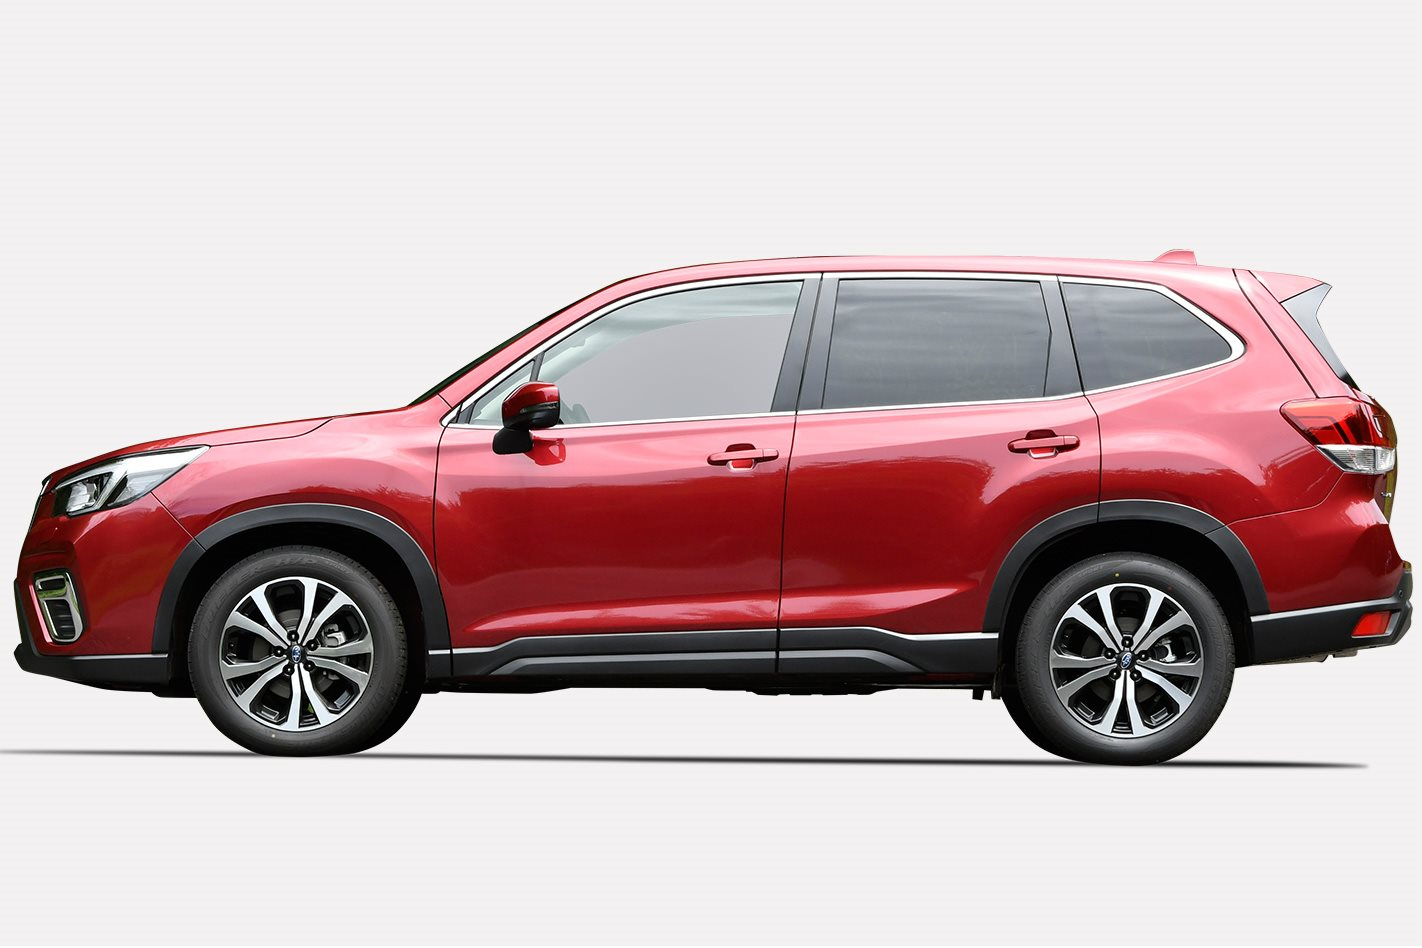 2019 Subaru Forester: 7 things you need to know